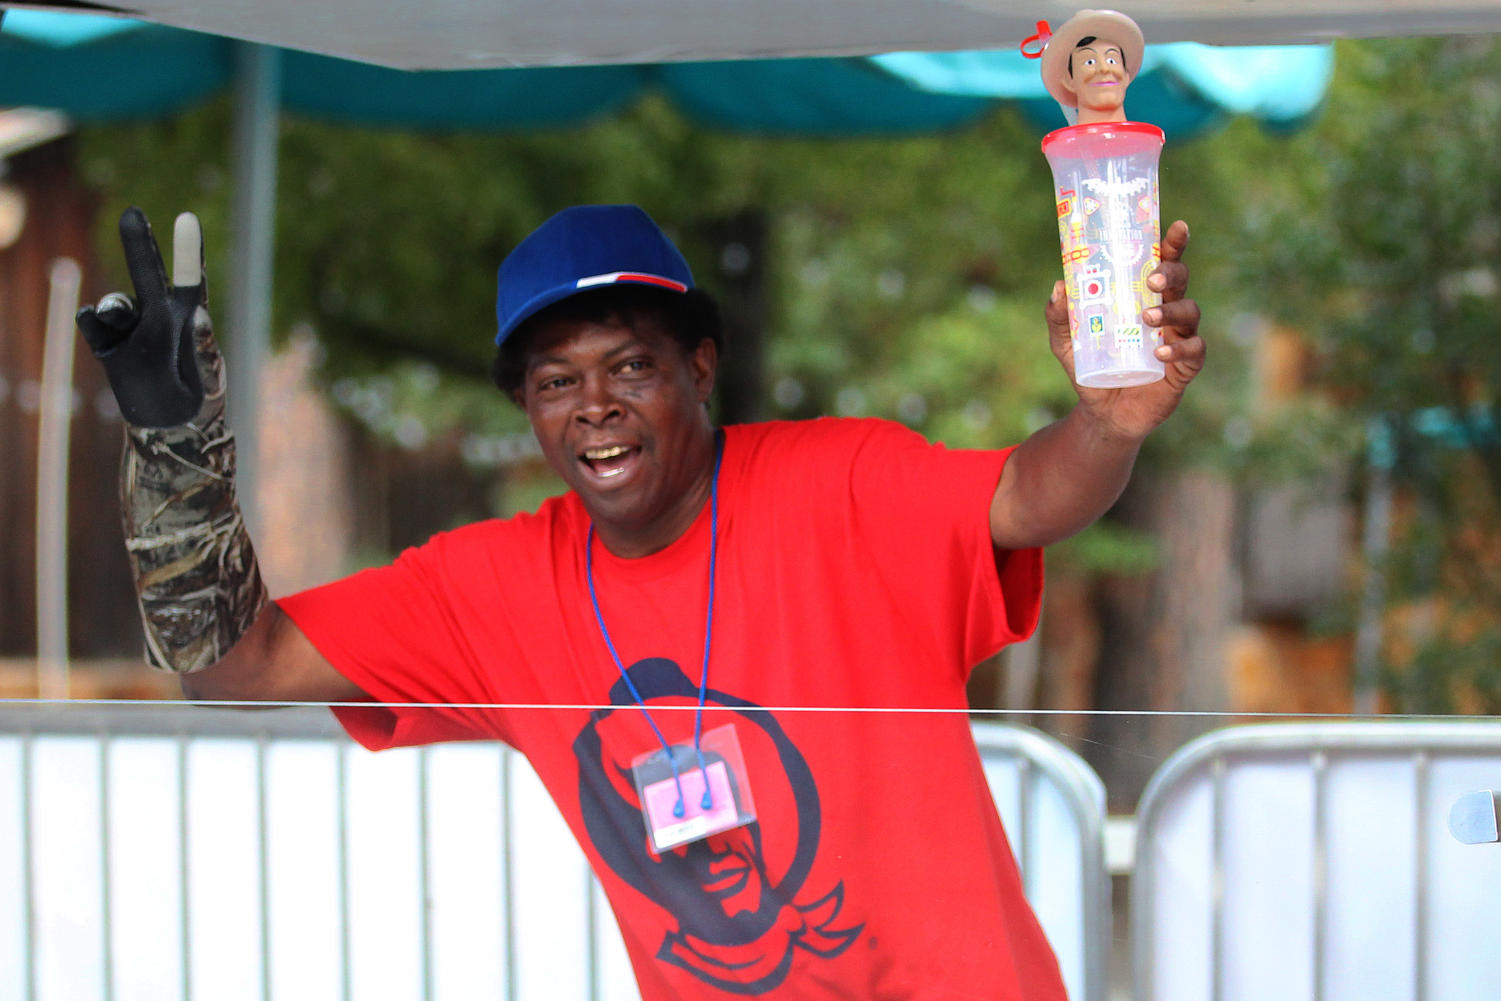 Lester Jenkins sells the cheapest water in the Fair Park at the price of only two tickets near the entrance of the State Fair. He loves the job and plans on returning every year.